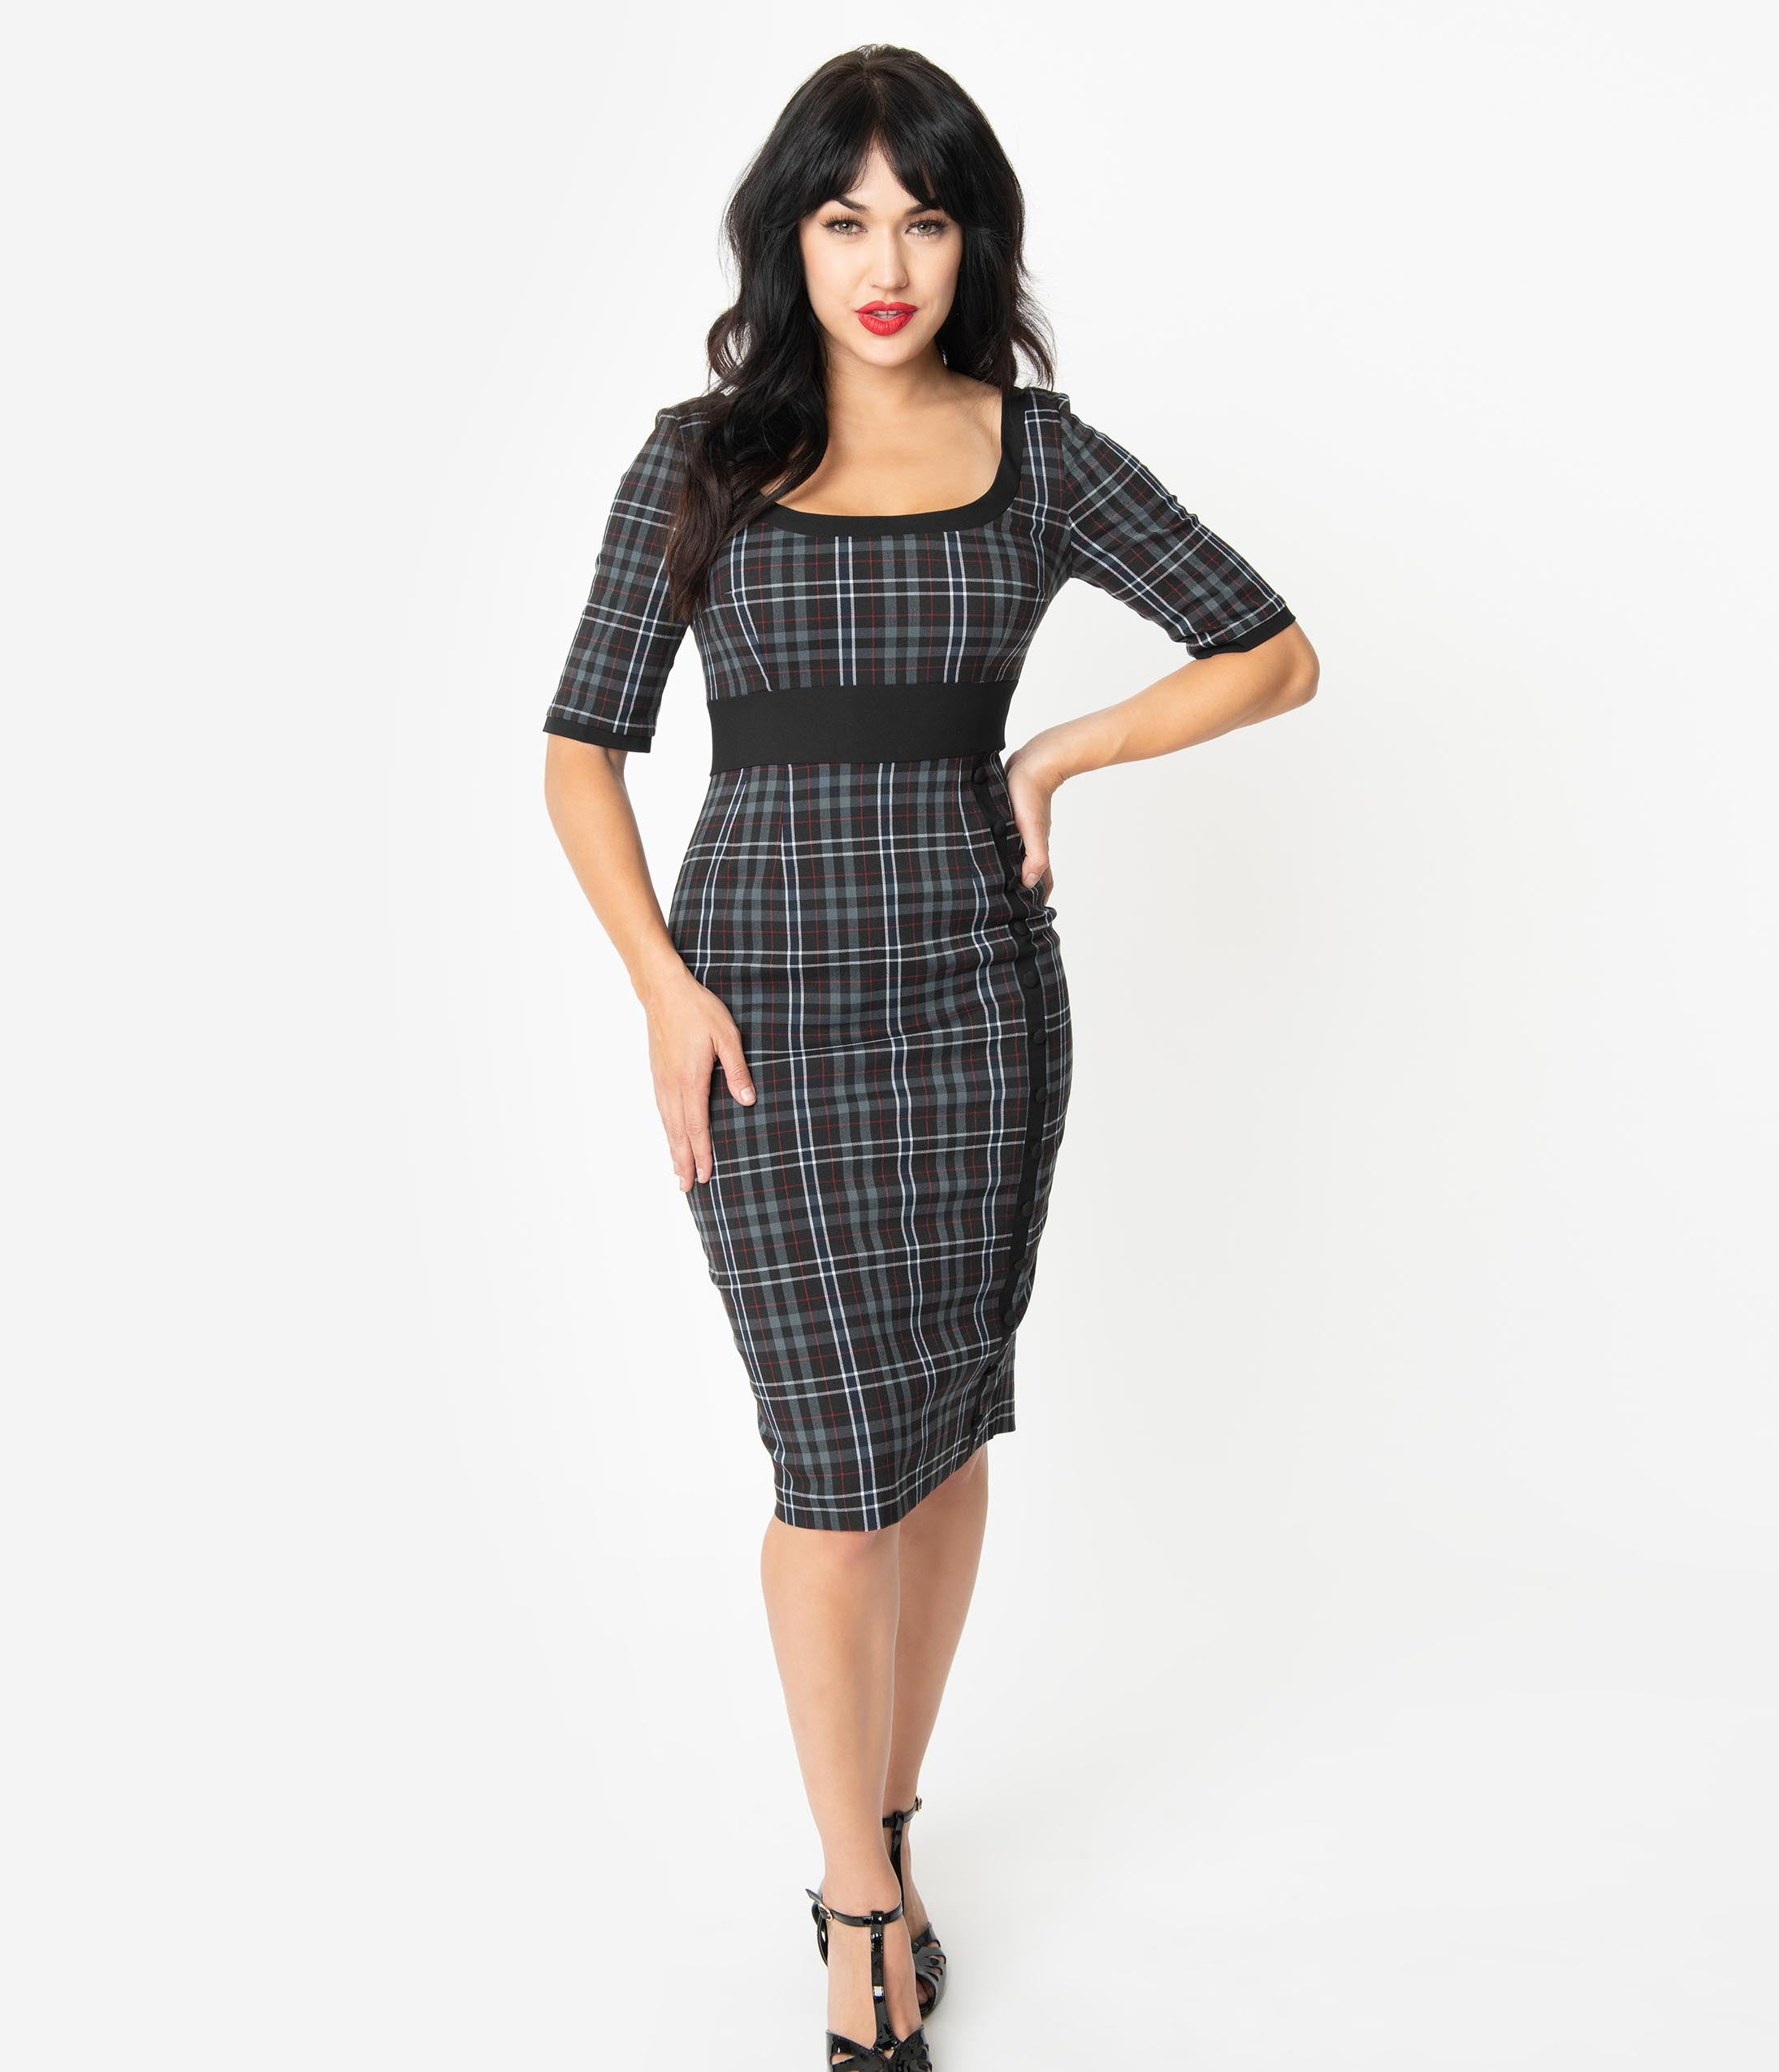 1960s Cocktail, Party, Prom, Evening Dresses Glamour Bunny 1960S Style Black  Grey Plaid Emily Pencil Dress $102.00 AT vintagedancer.com